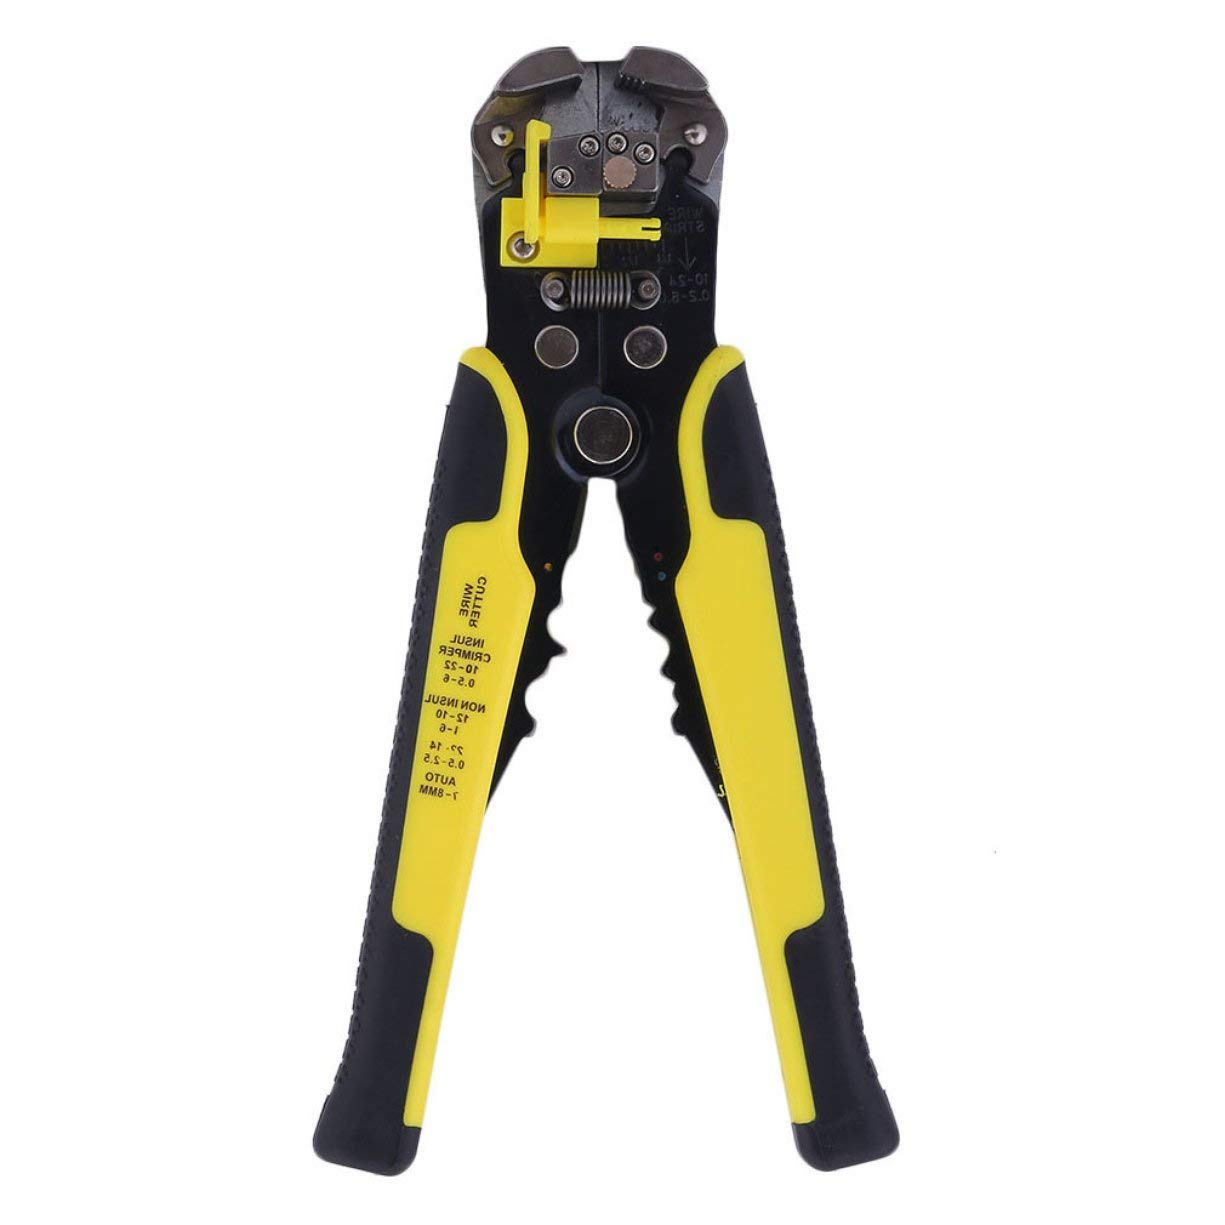 Multifunctional Practical Automatic Wire Striper Cutter Stripper Crimper Pliers Terminal Tool with Cushion Handle Grip